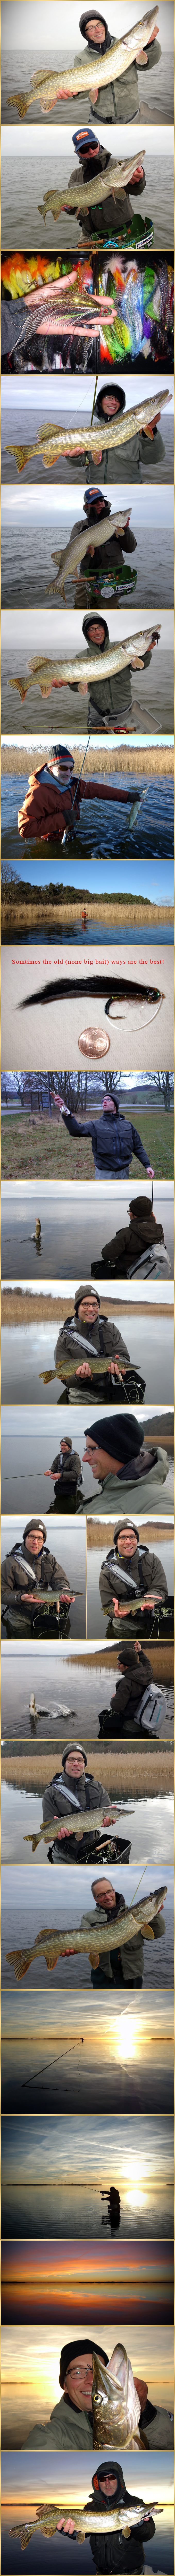 flyfishing-guides